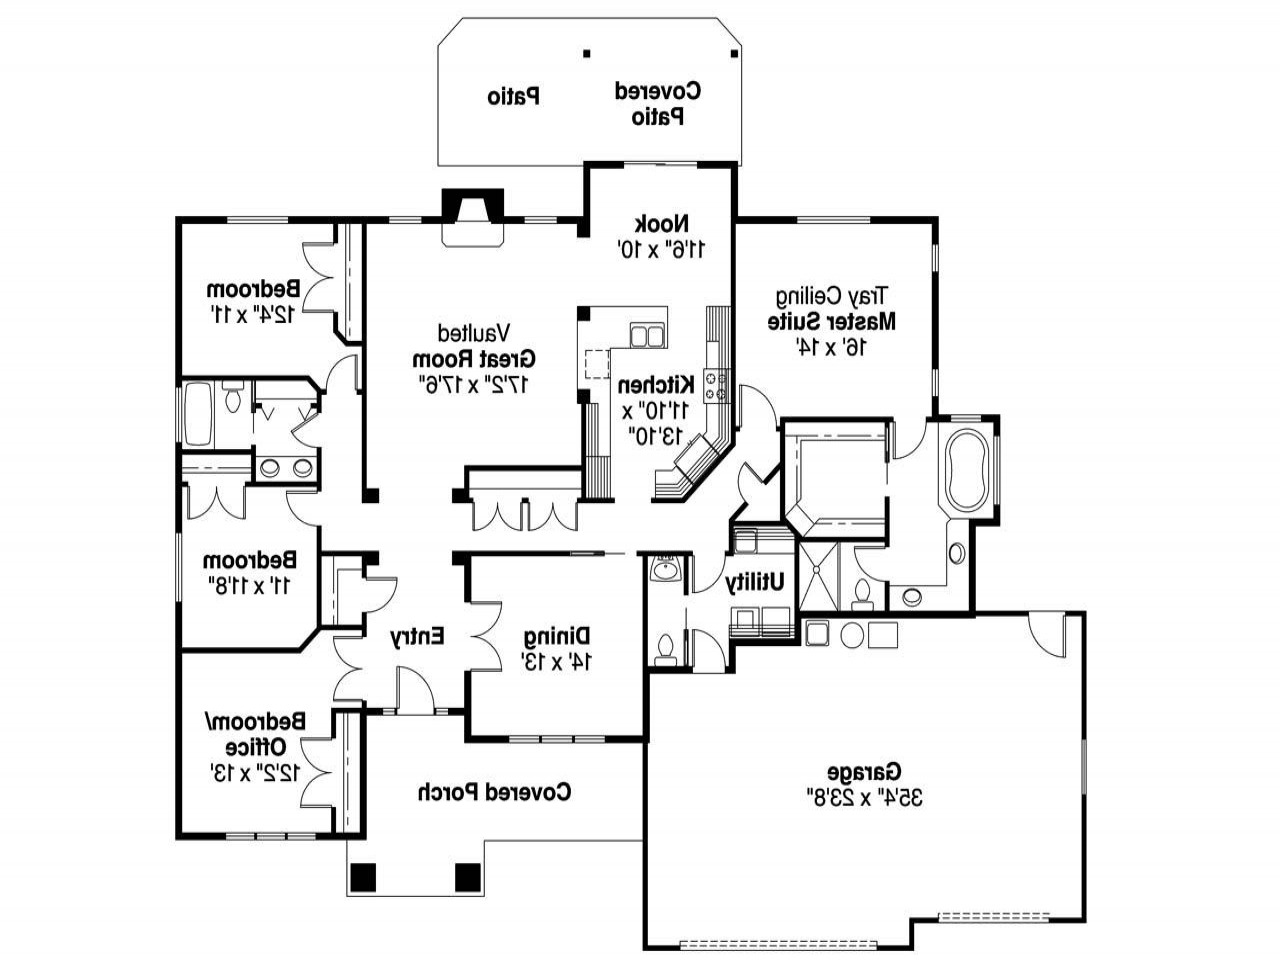 Best craftsman house plans craftsman house floor plans for Best ranch house plans 2016